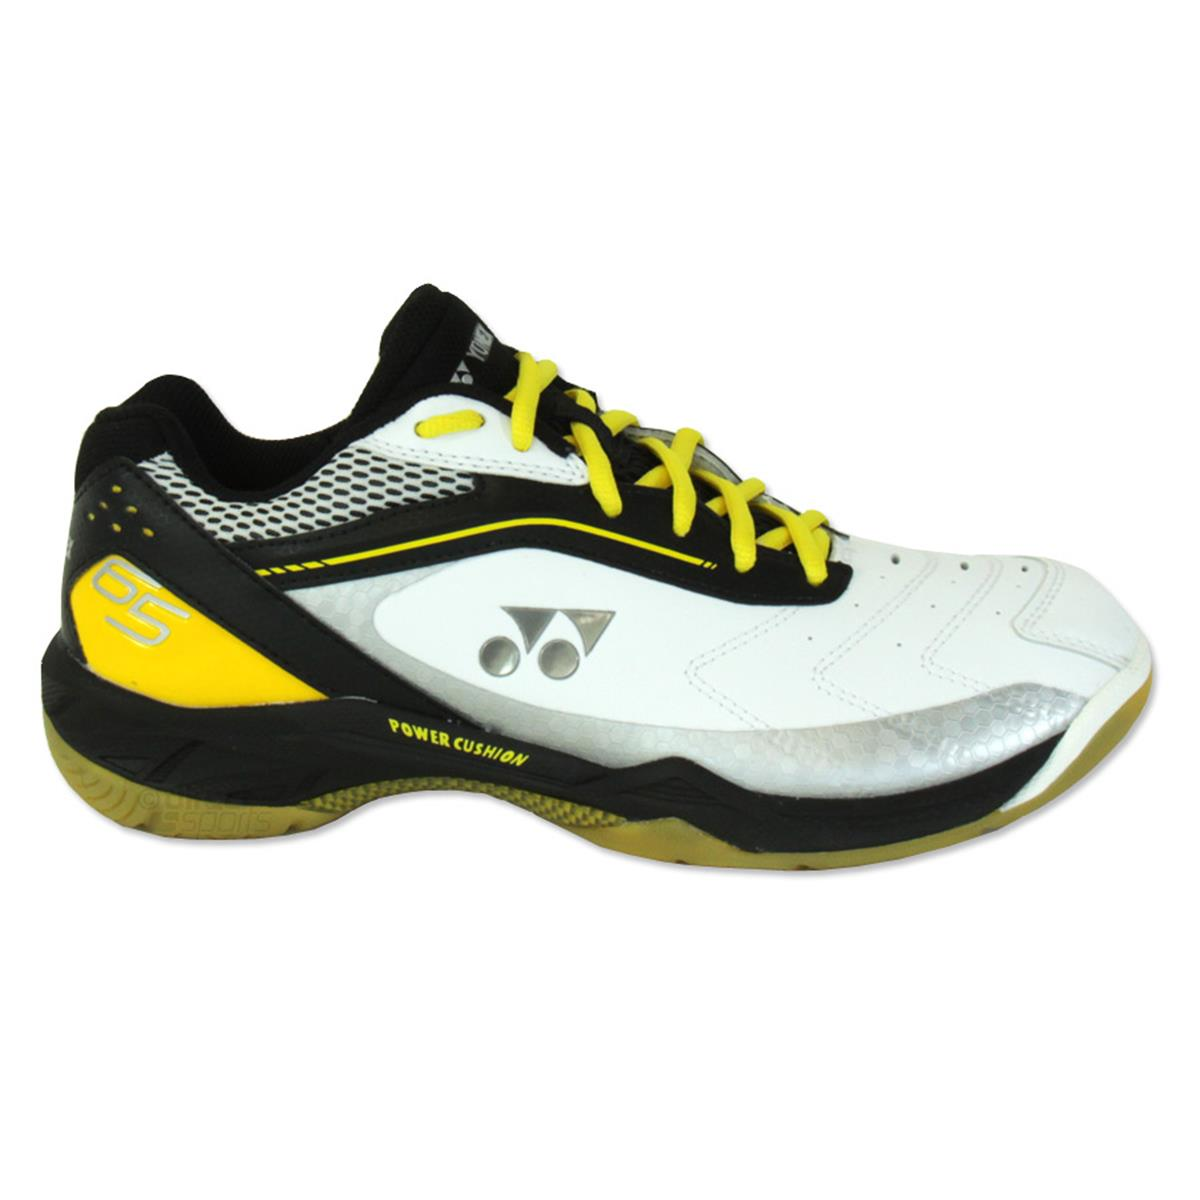 Yonex Power Cushion 65 Badminton Shoe (White-Black-Yellow ... 8257f13260817